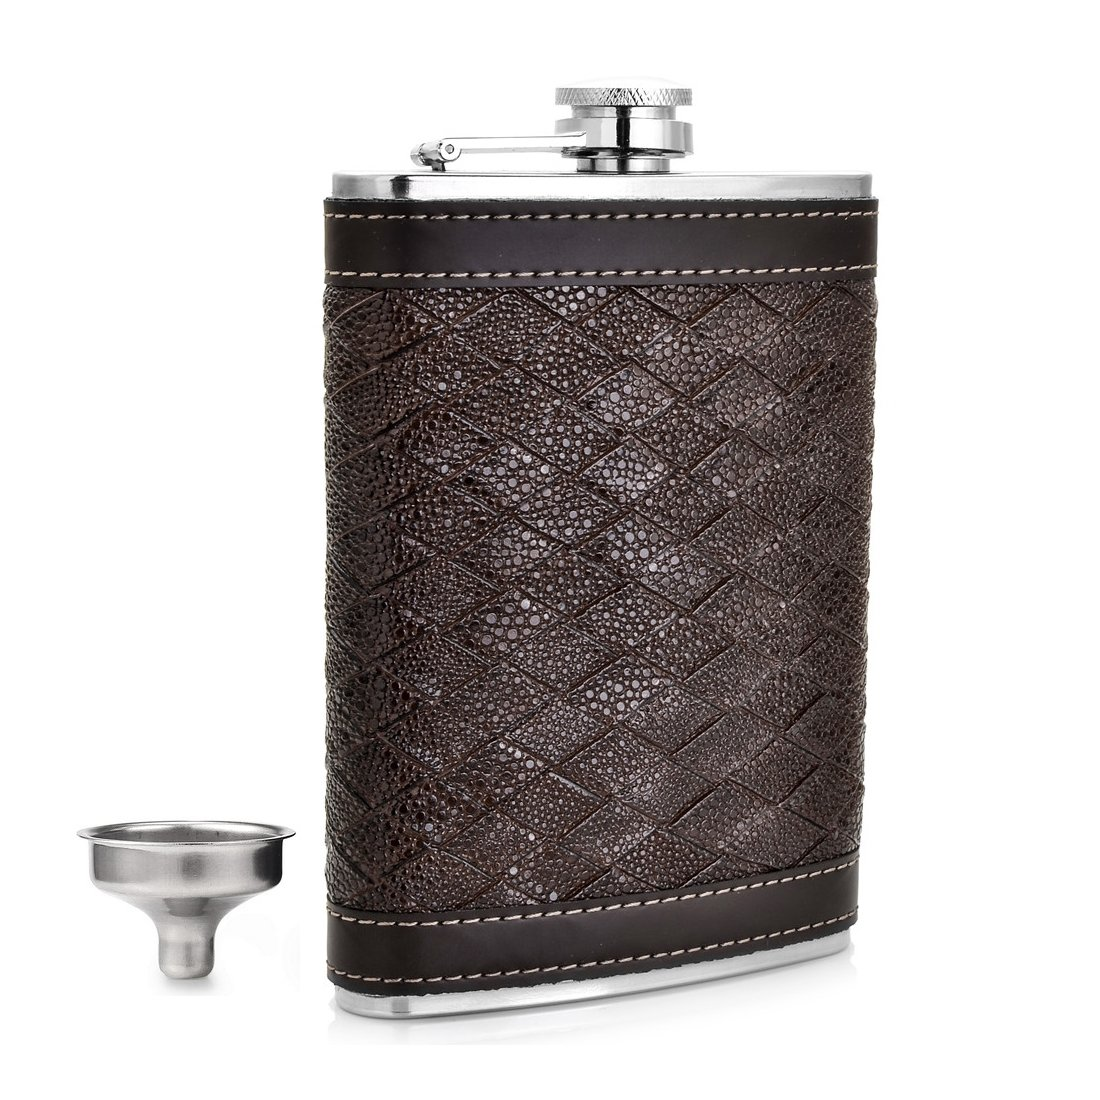 GENNISSY 9 OZ Brown Woven Hip Flask - PU Leather Stainless Steel Men Flasks for Liquor with Funnel